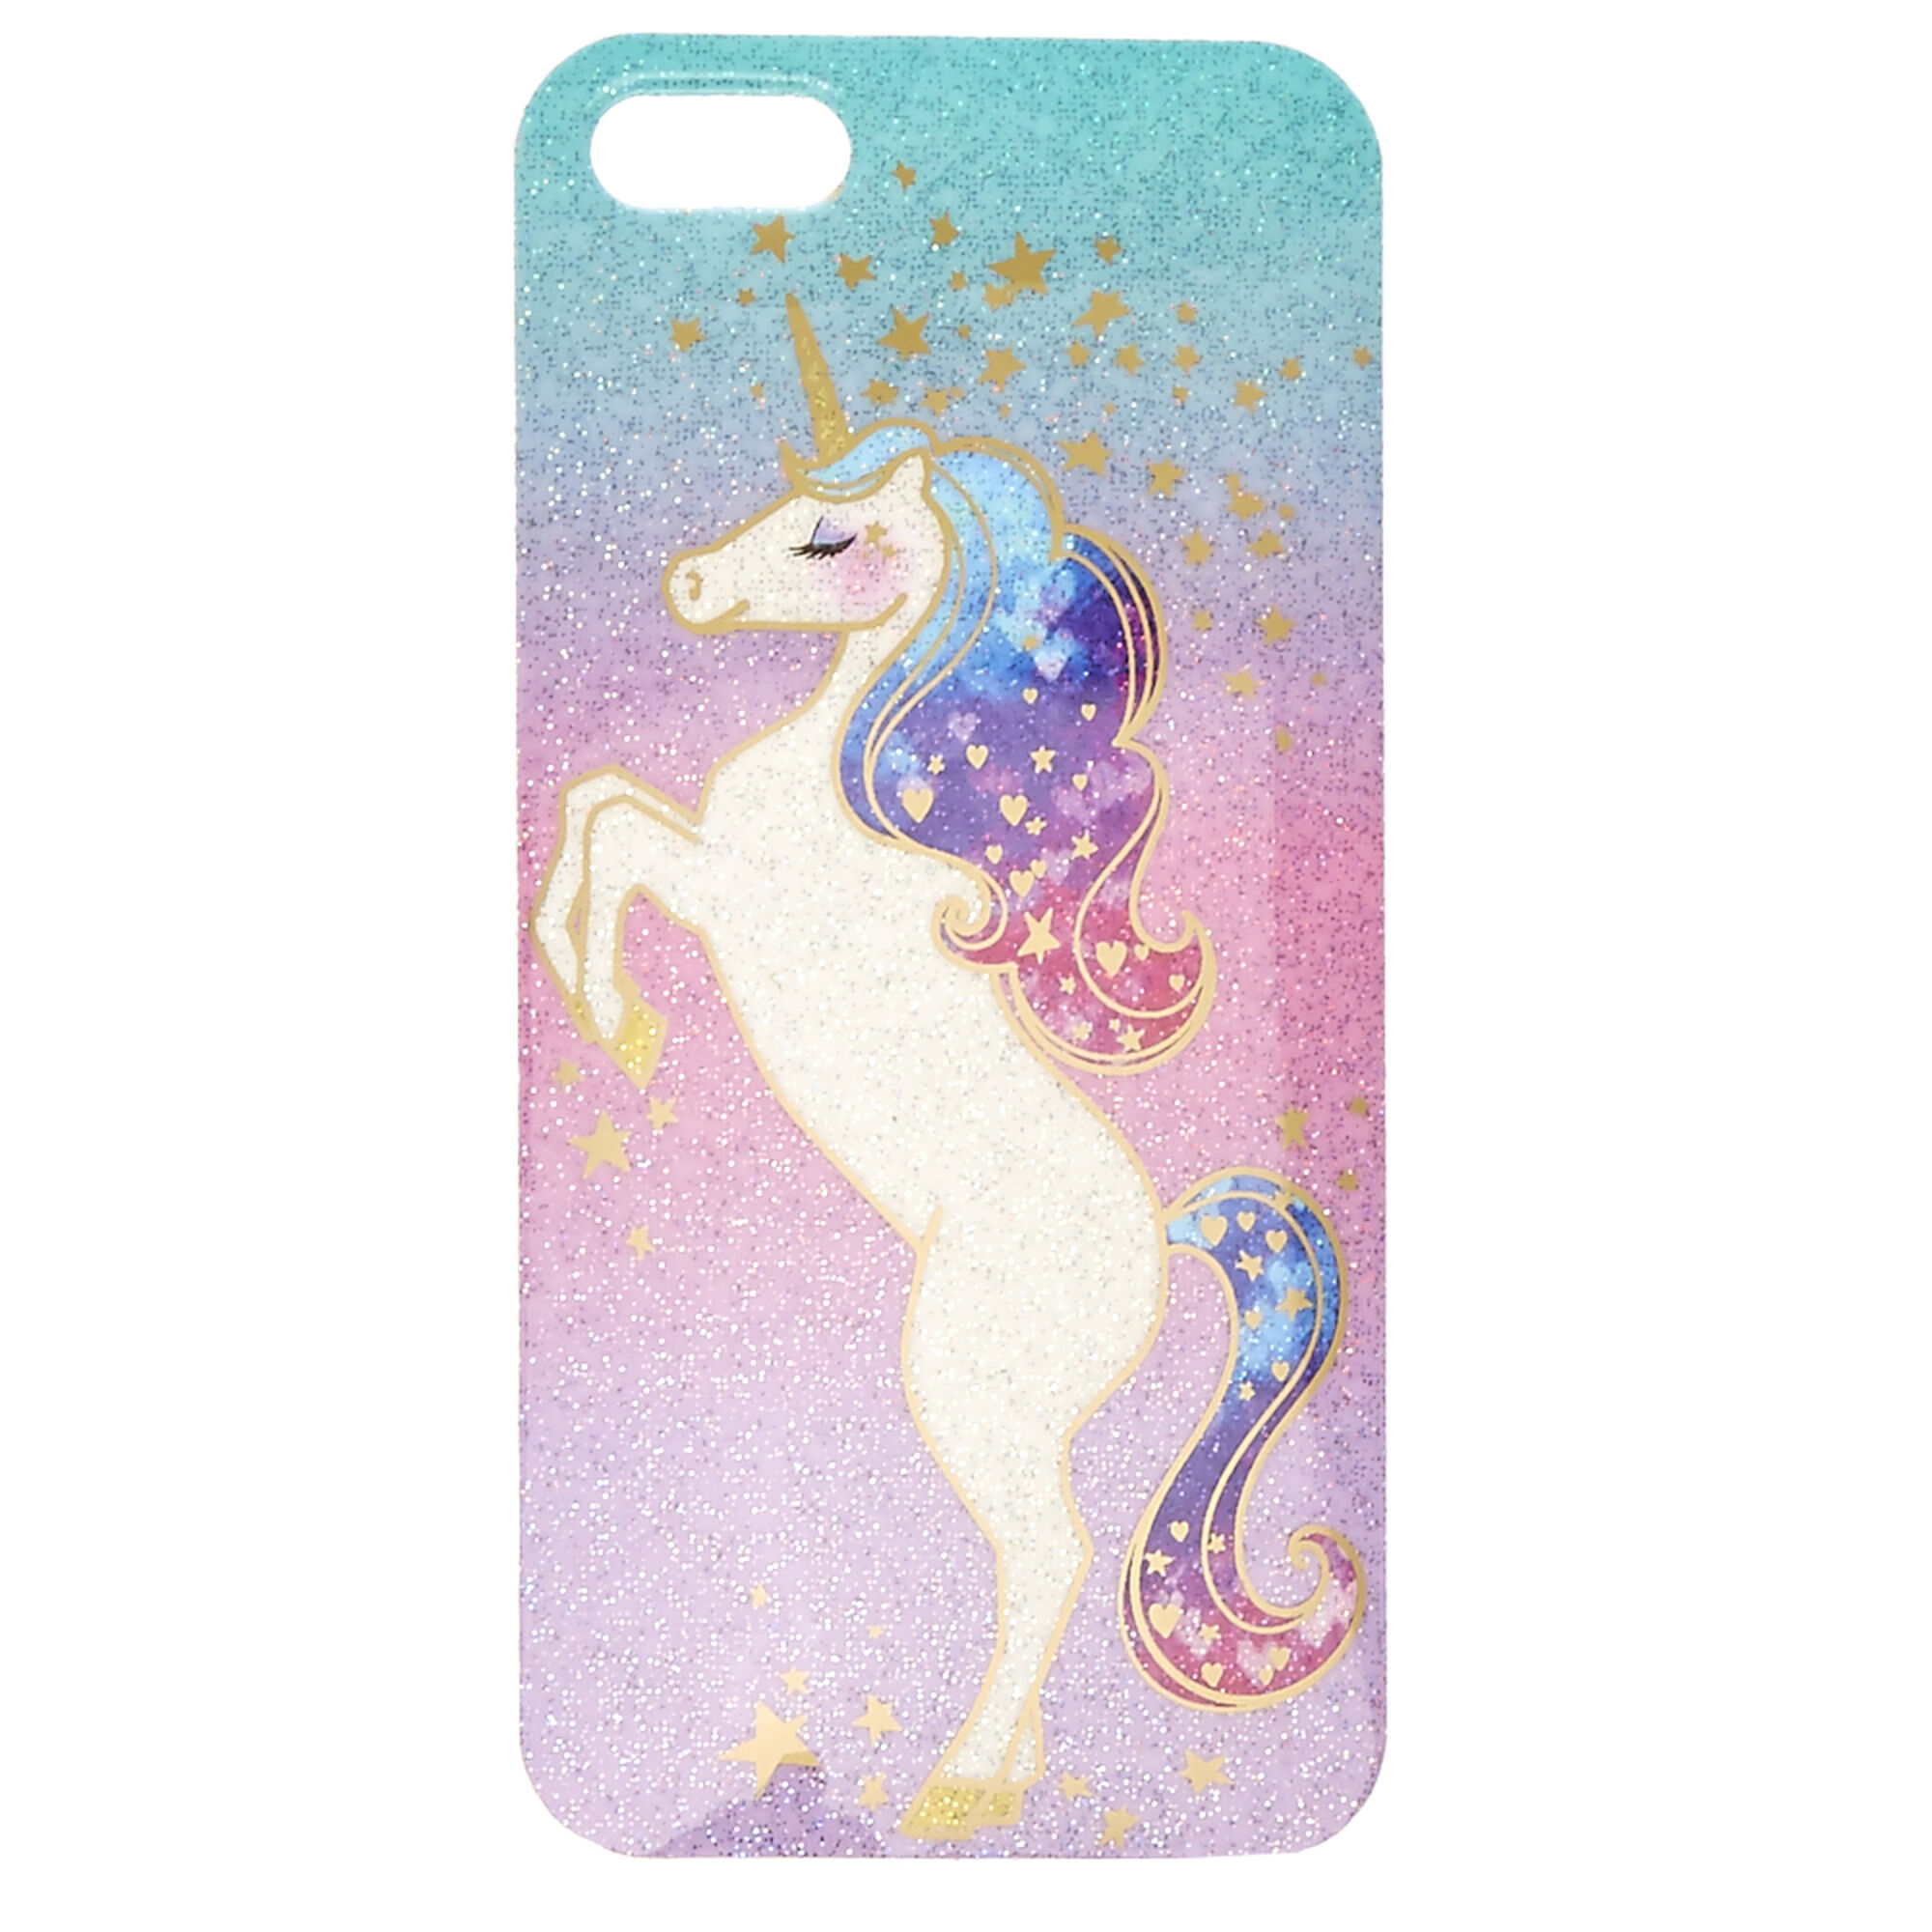 Shimmer unicorn ipod case claire 39 s us for Housse samsung galaxy s5